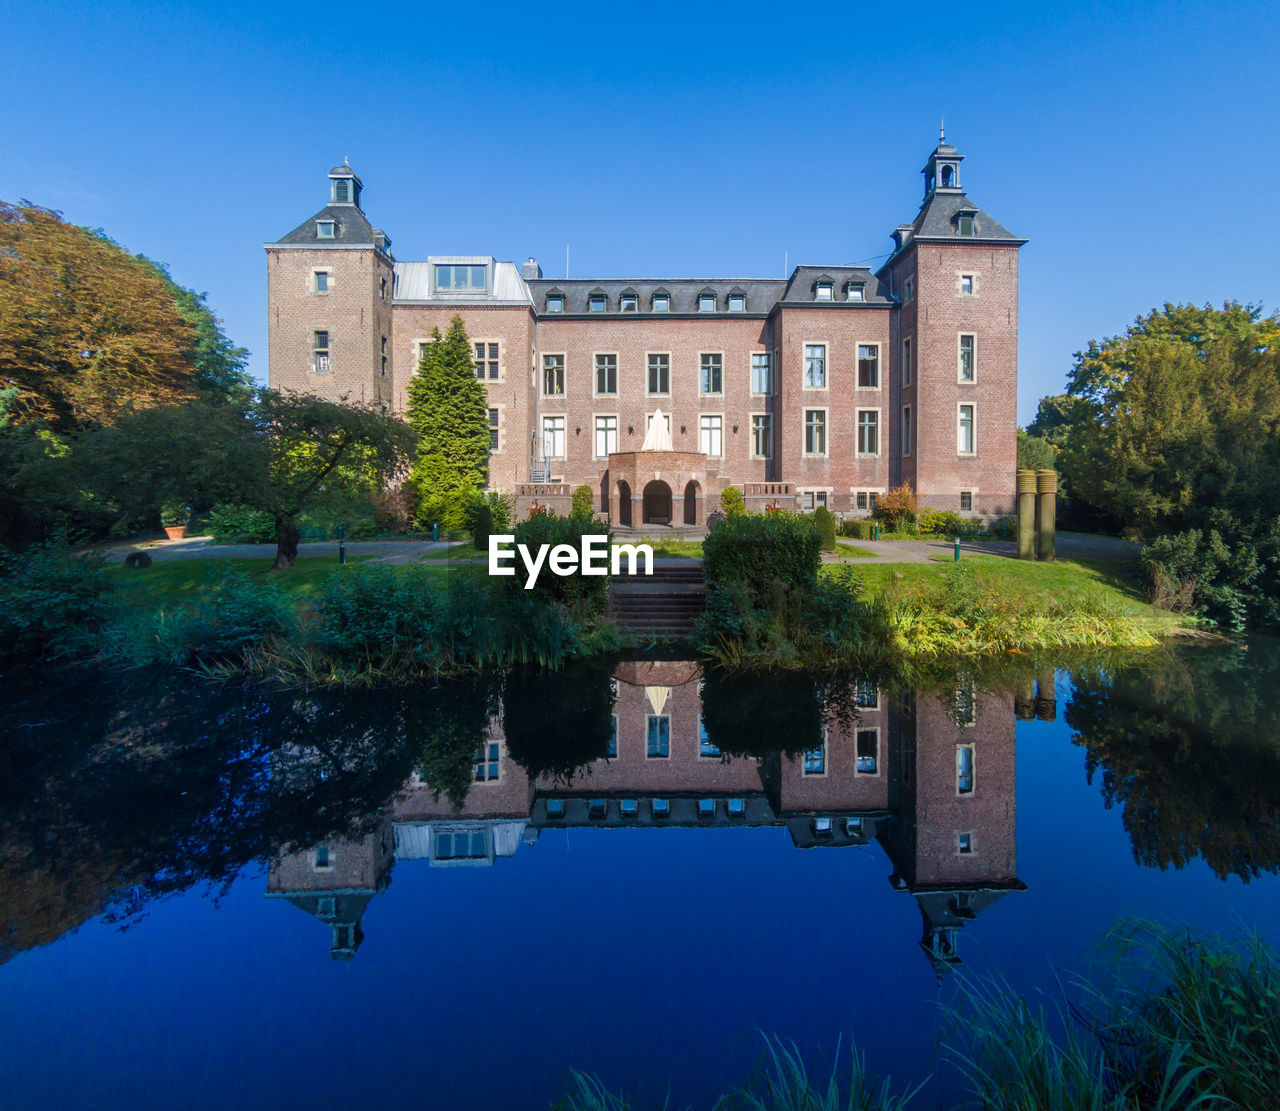 building exterior, built structure, architecture, water, reflection, sky, plant, nature, building, tree, the past, blue, waterfront, travel destinations, lake, mansion, history, no people, tourism, luxury